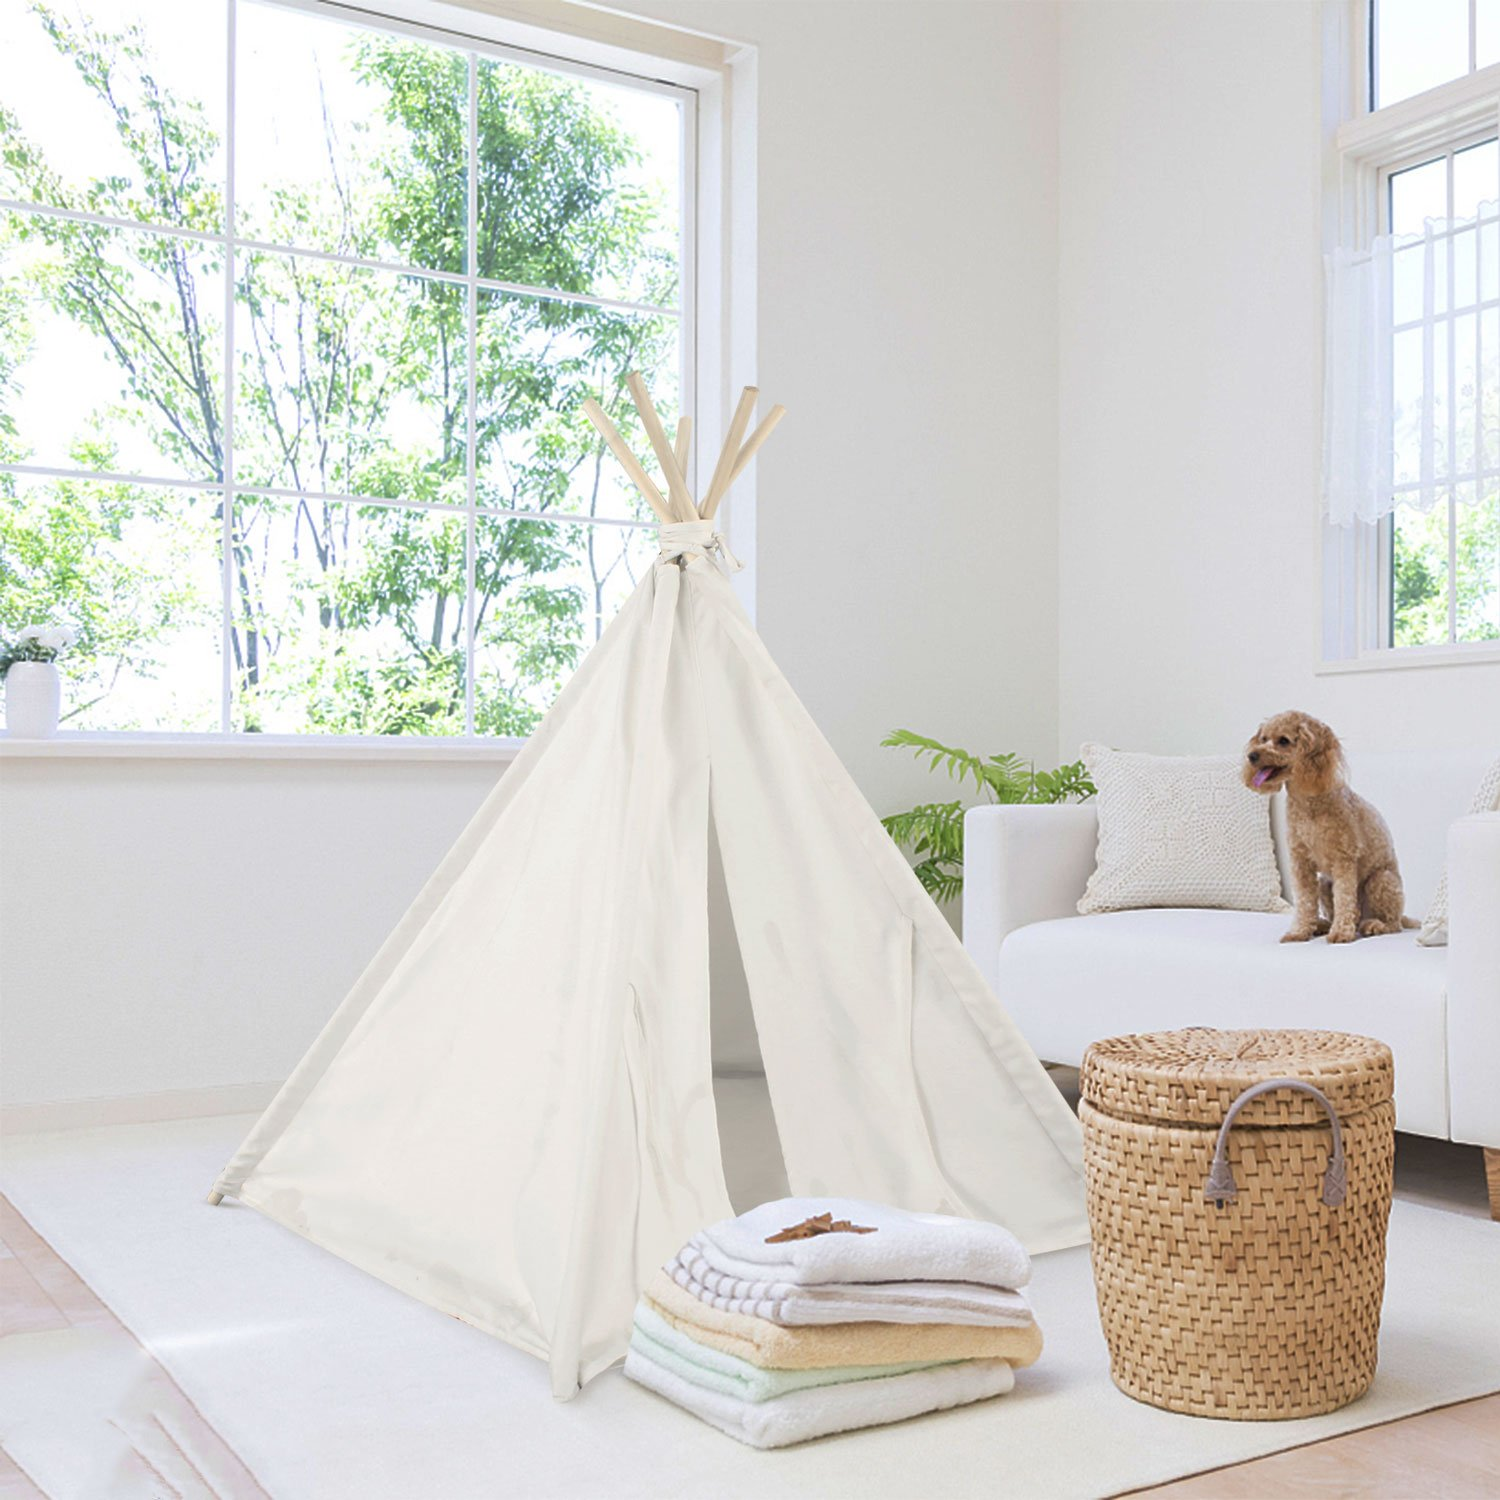 UKadou Pet Teepee Tent for Dogs Cats Foldable Portable Cotton Canvas Pet Bed House for Rabbit Puppy 5 Poles Pine Wooden with Floor White Color 24 Inches (Pine White Style)